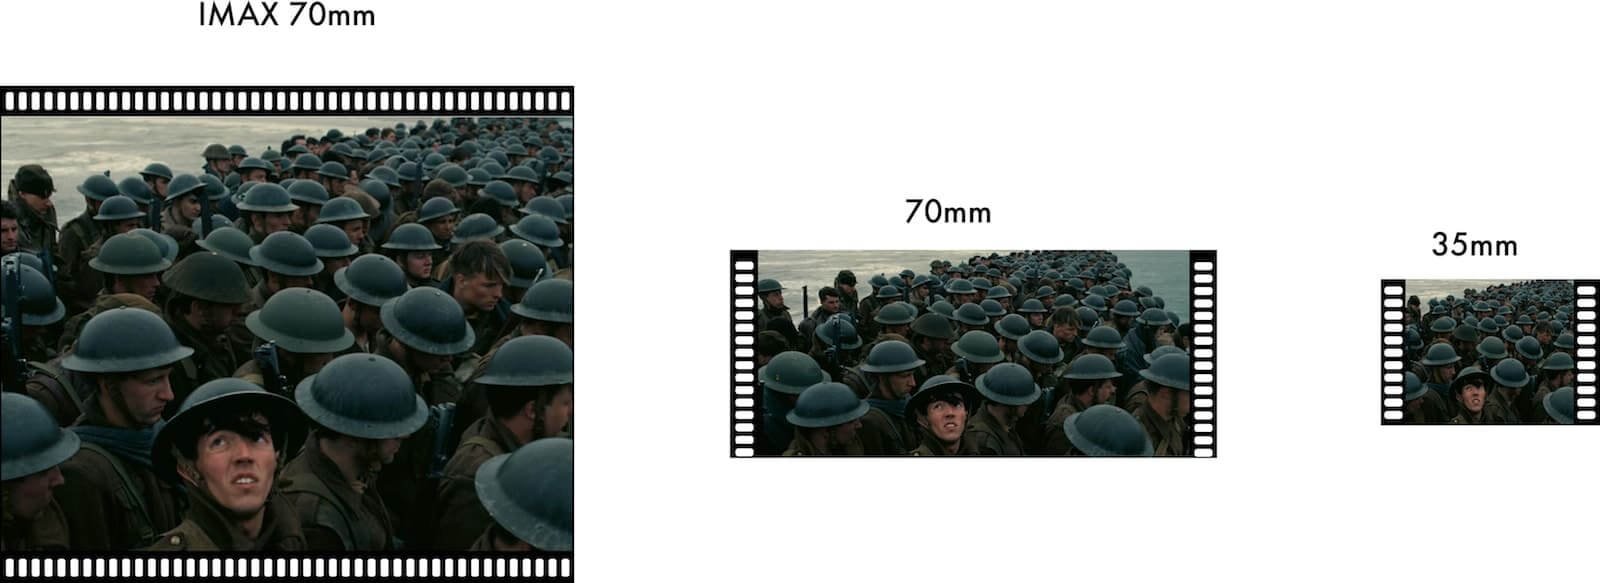 Aspect Ratio Calculator - IMAX 70mm Film Stock for Aspect Ratio